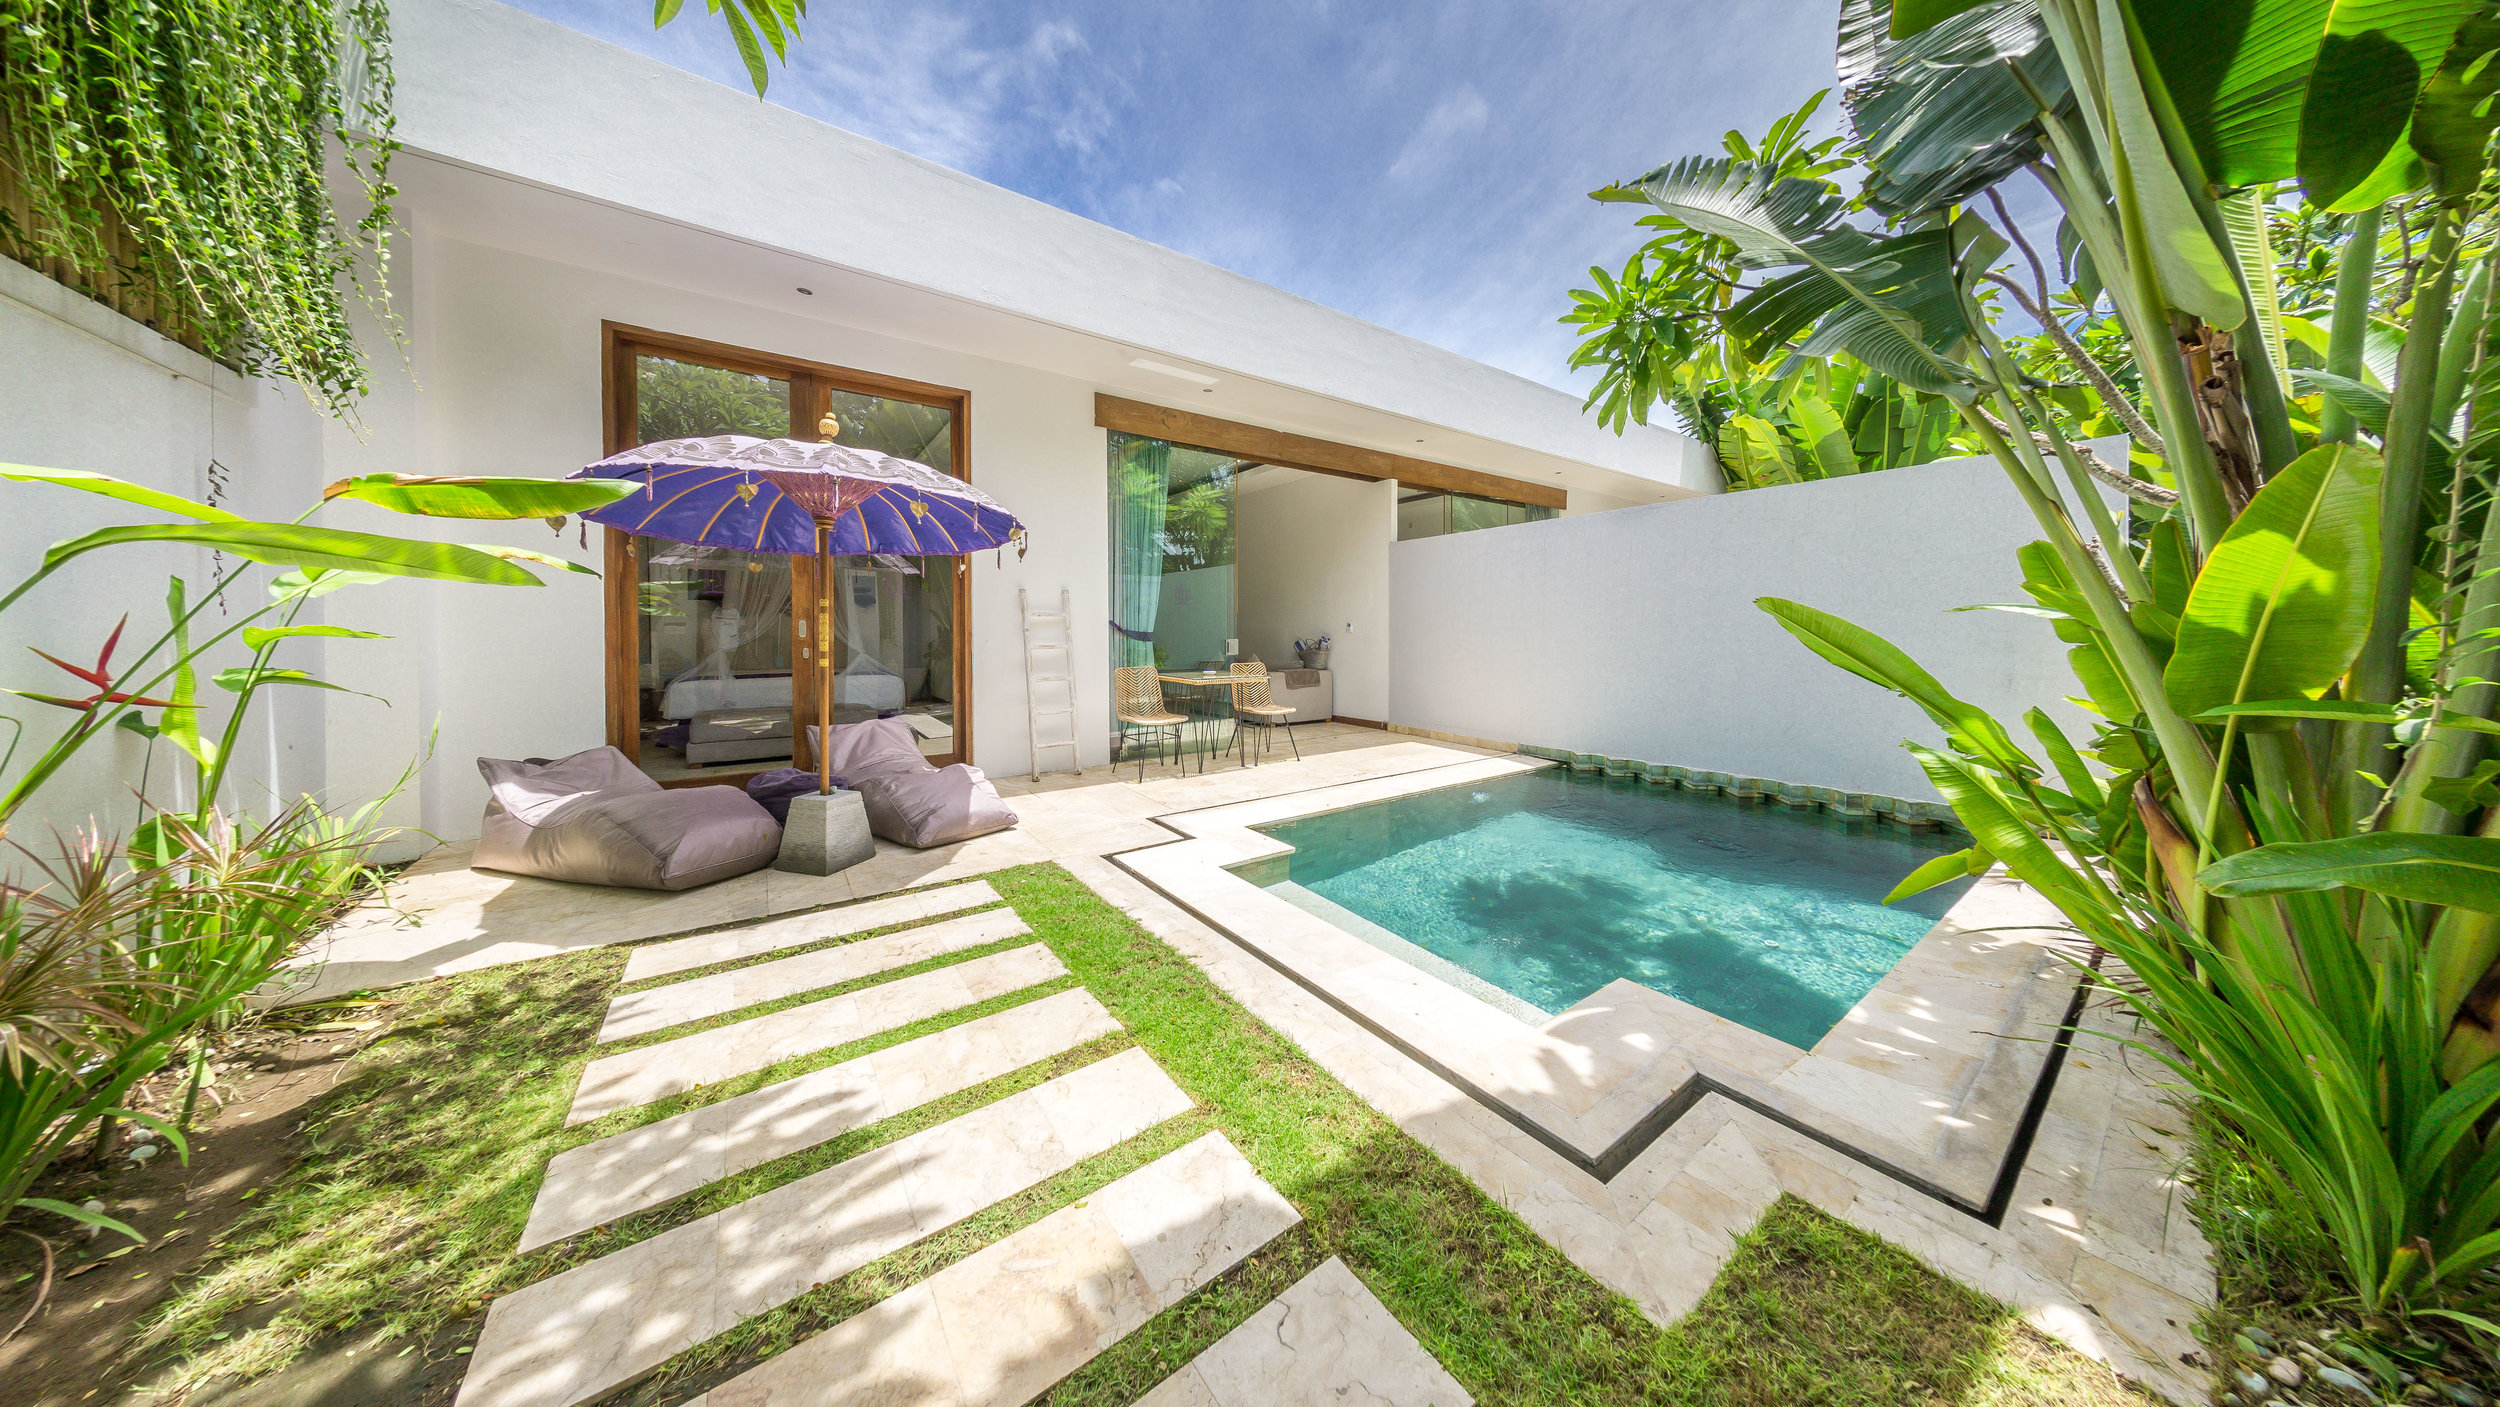 Anema Villa Seminyak - One Bedroom private pool villa with Bath Small-16.jpg